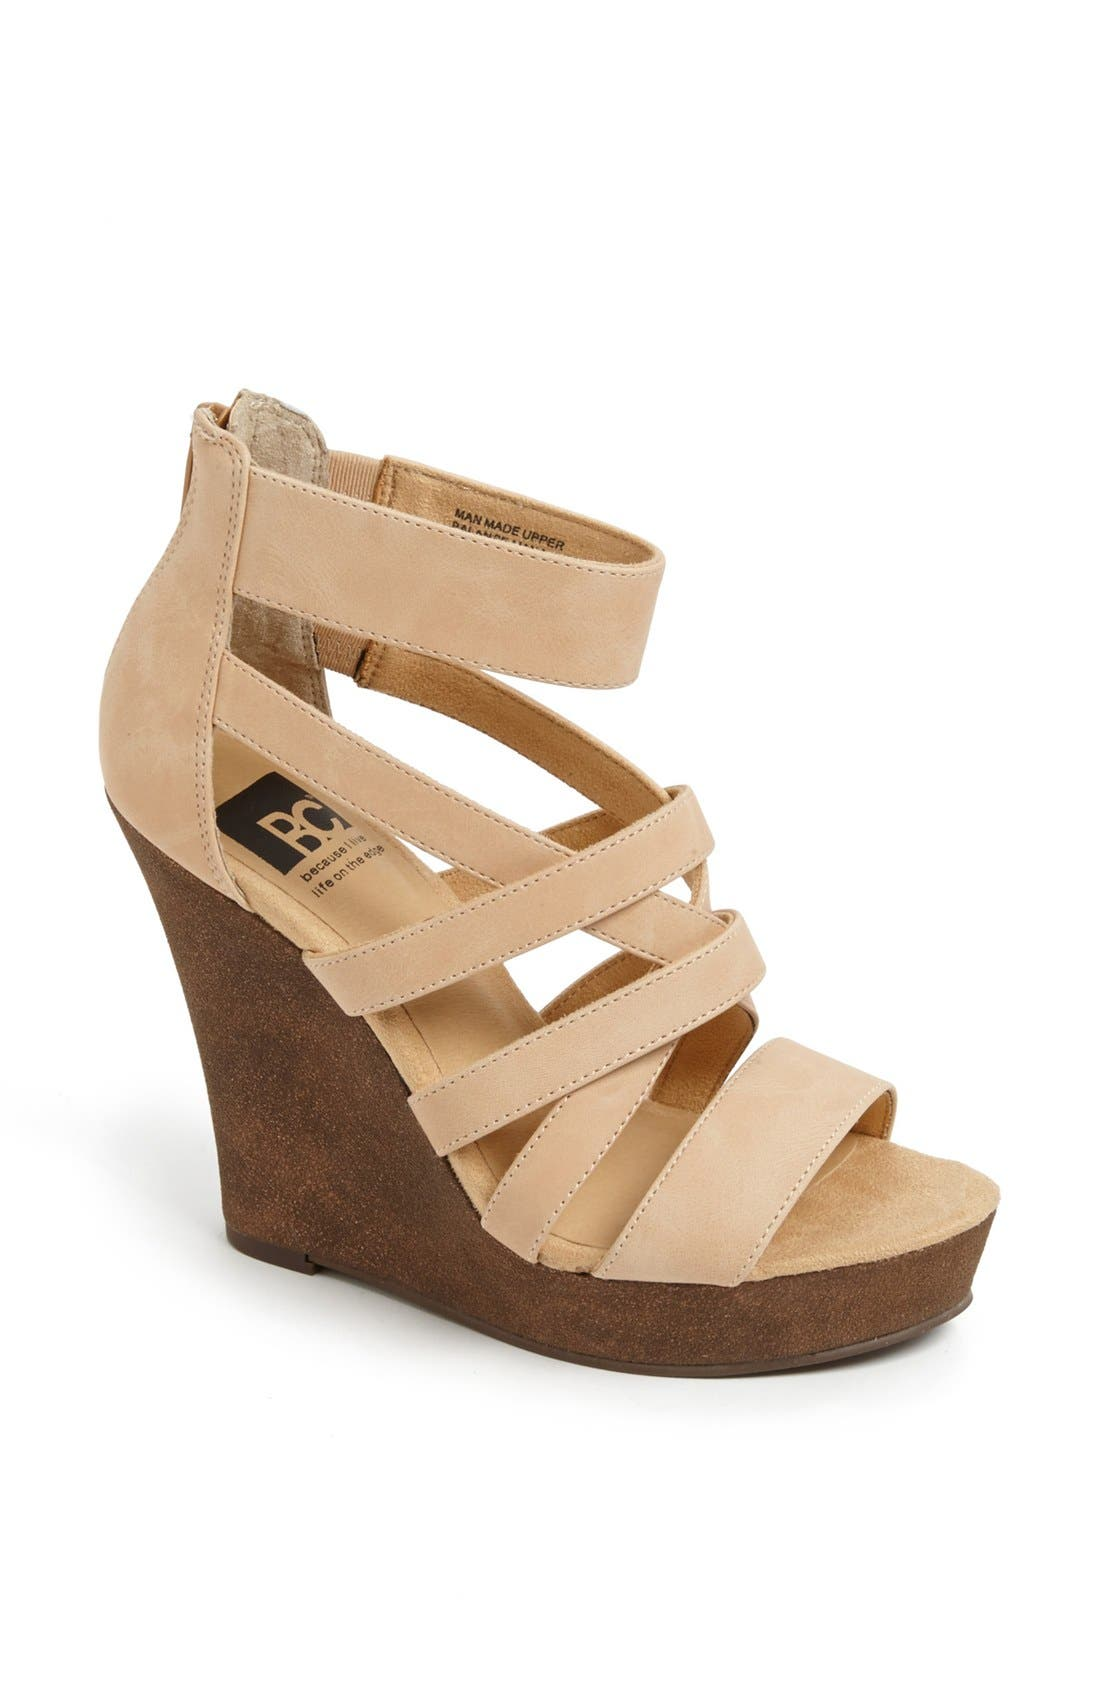 'Tell You What' Wedge Sandal,                         Main,                         color, Nude